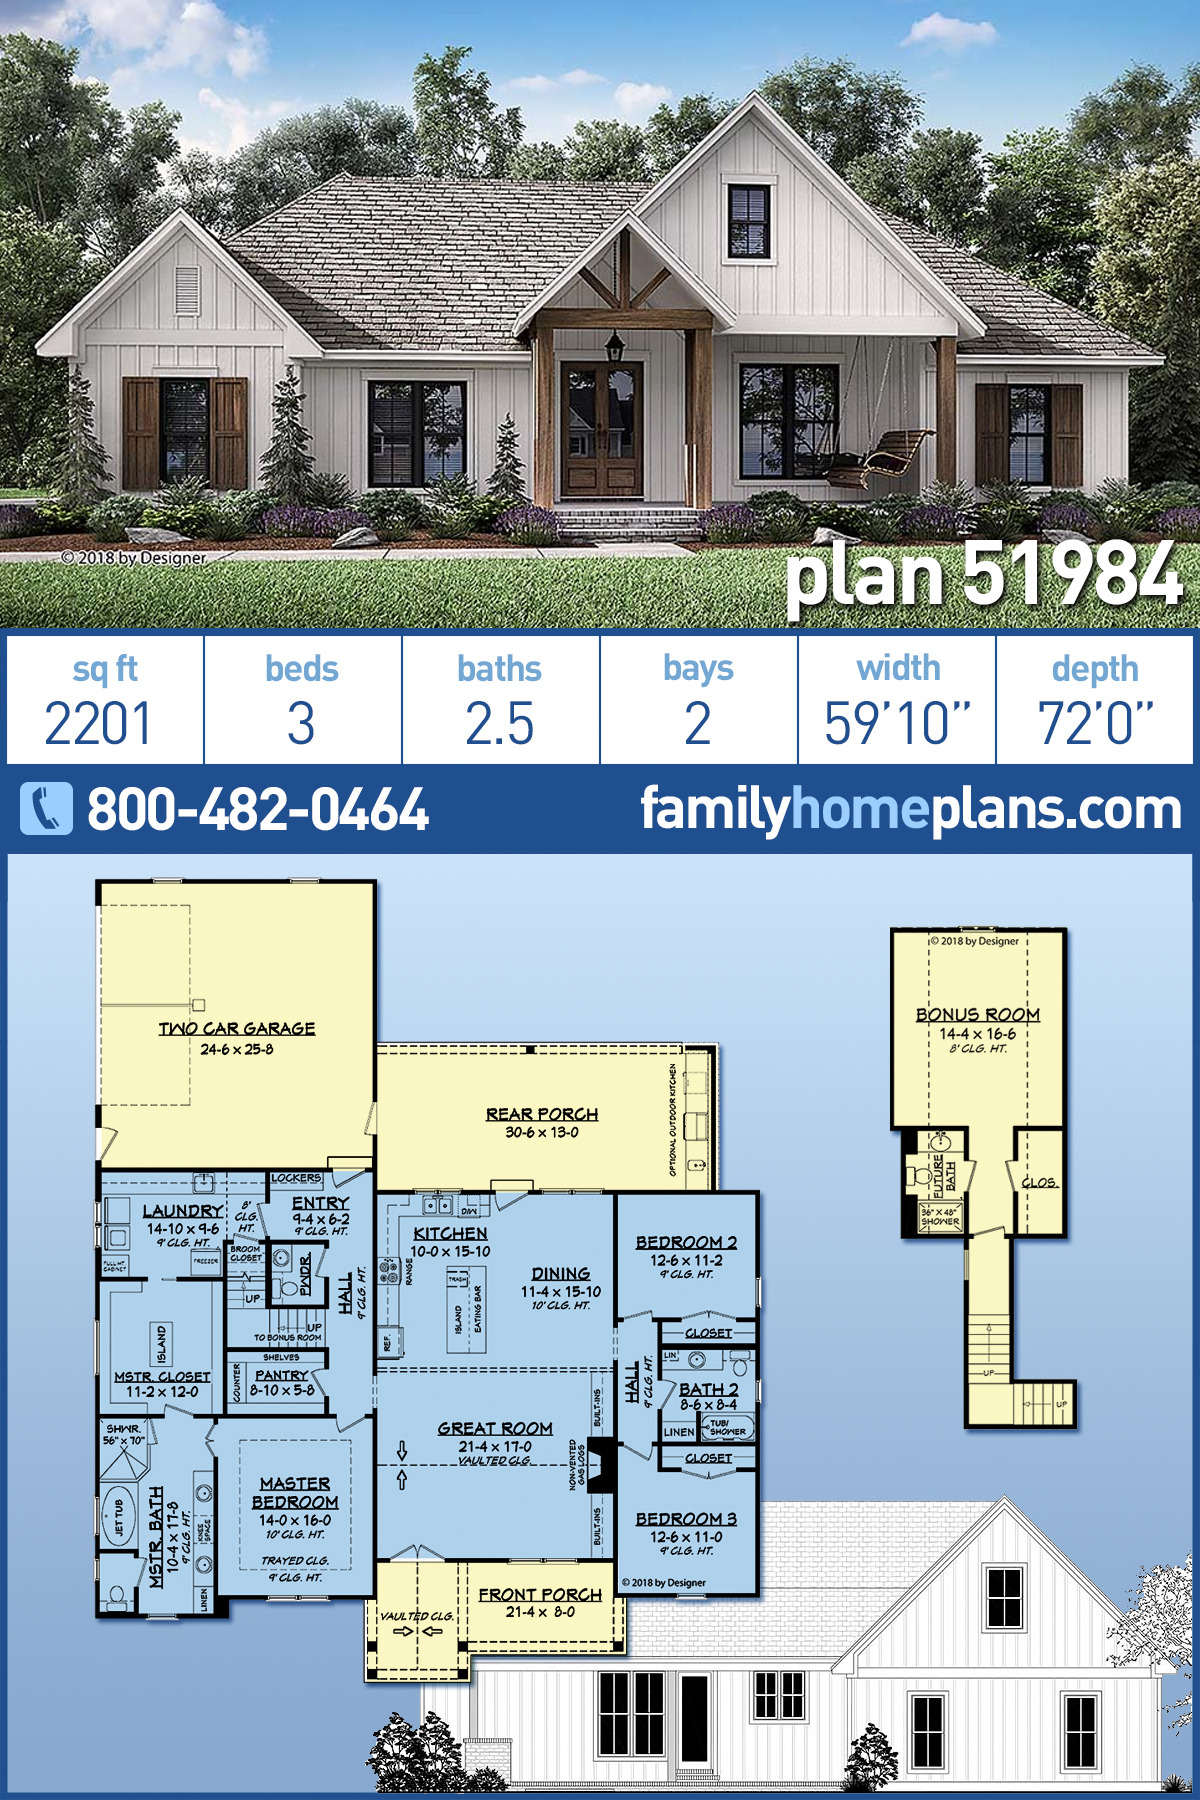 House Plans with Rv Storage Fresh southern Style House Plan with 3 Bed 3 Bath 2 Car Garage